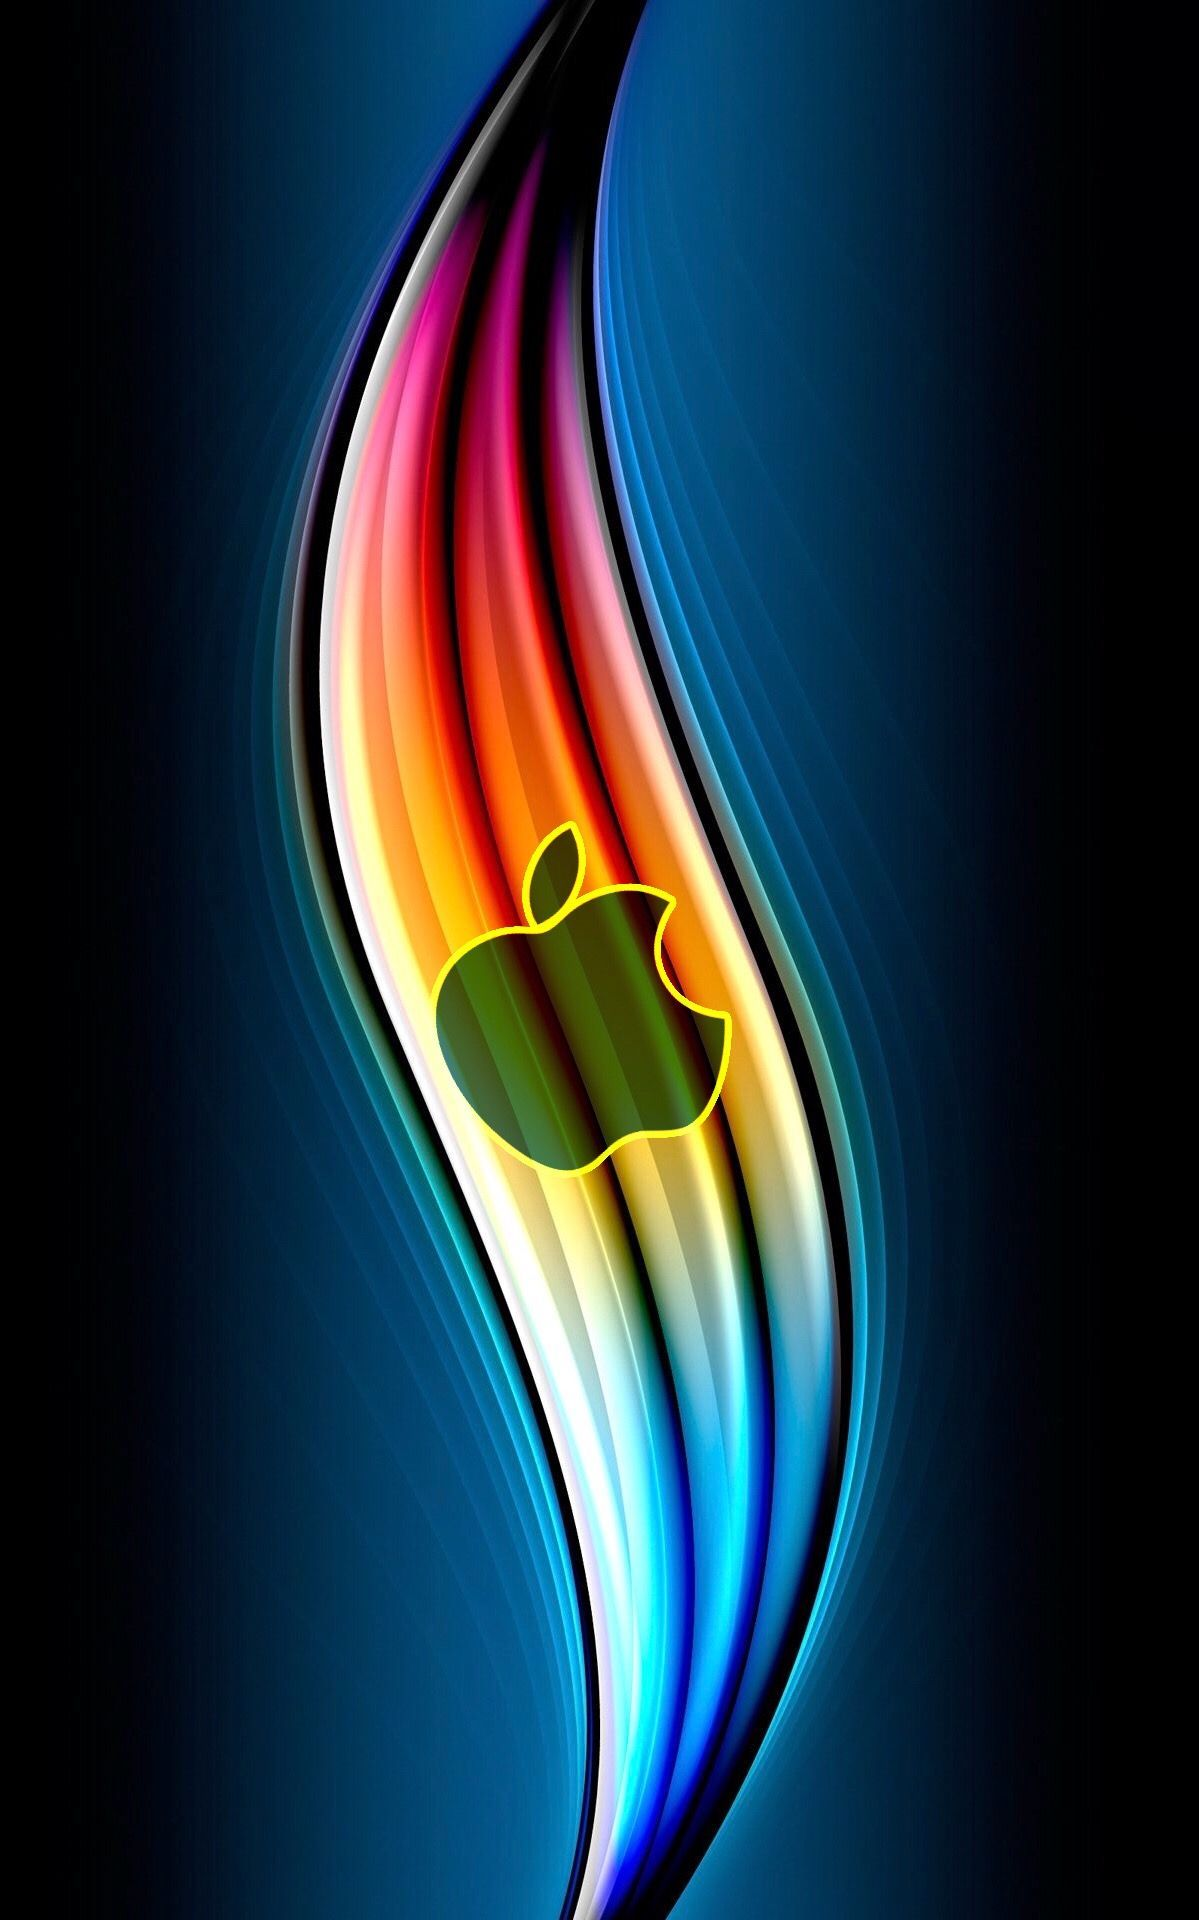 Original Apple Computer Wallpaper Http Wallpapersalbum Com Original Apple Computer Wall In 2020 Abstract Iphone Wallpaper Apple Wallpaper Apple Logo Wallpaper Iphone